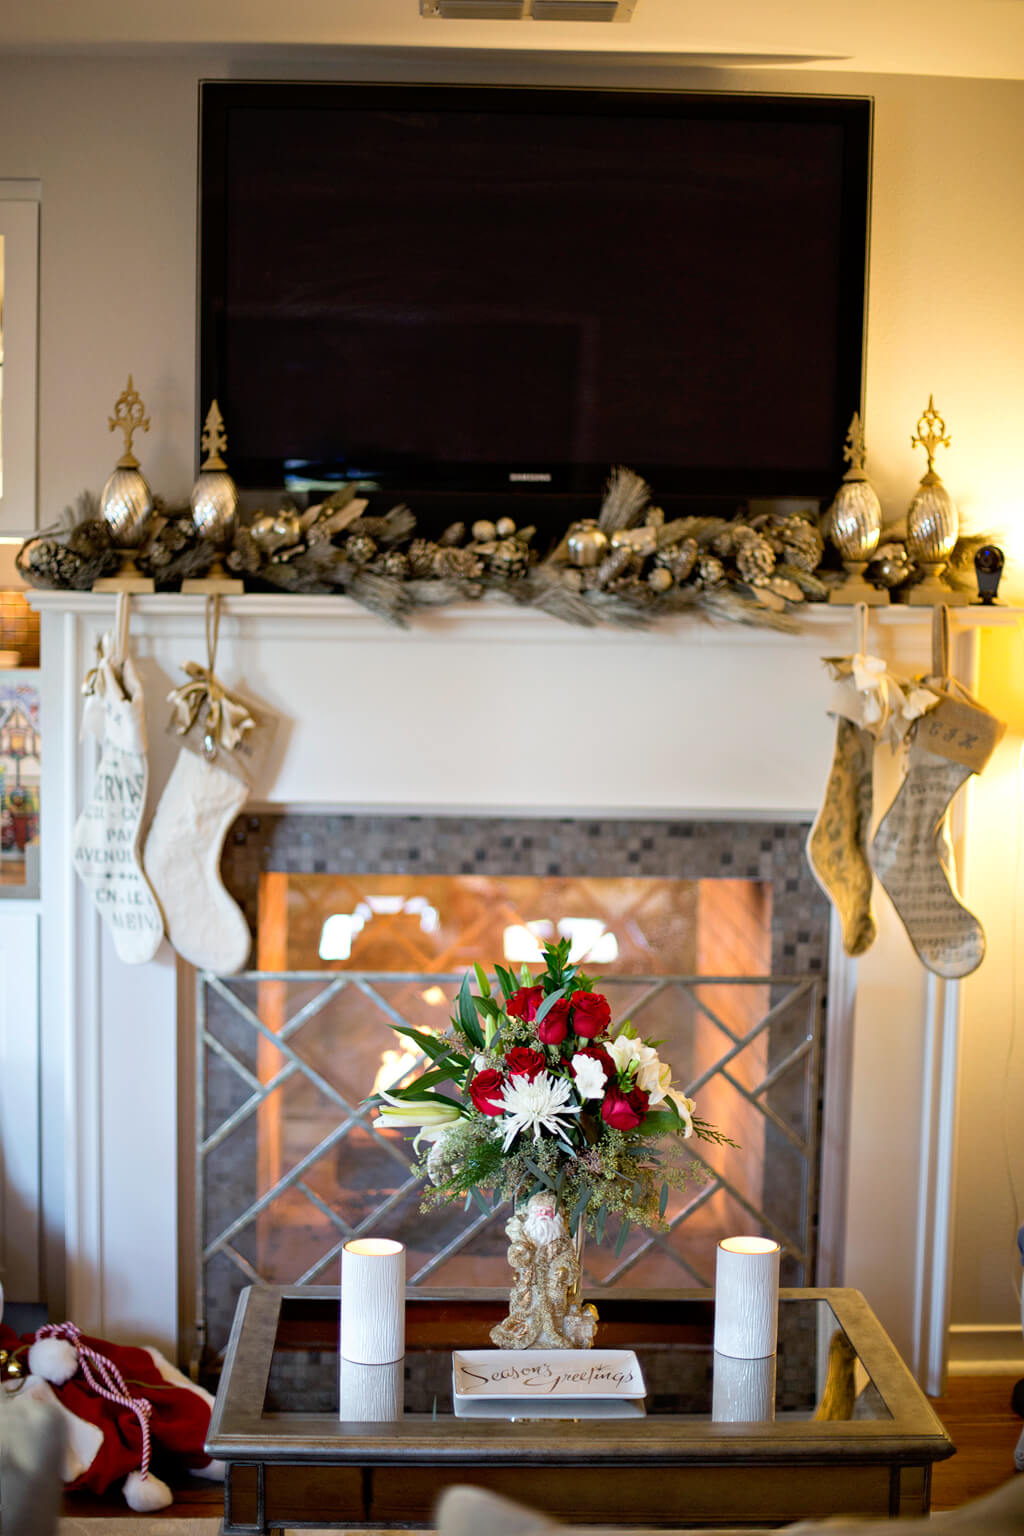 Holiday Home Tour // Christmas Decor // www.thehisfor.com